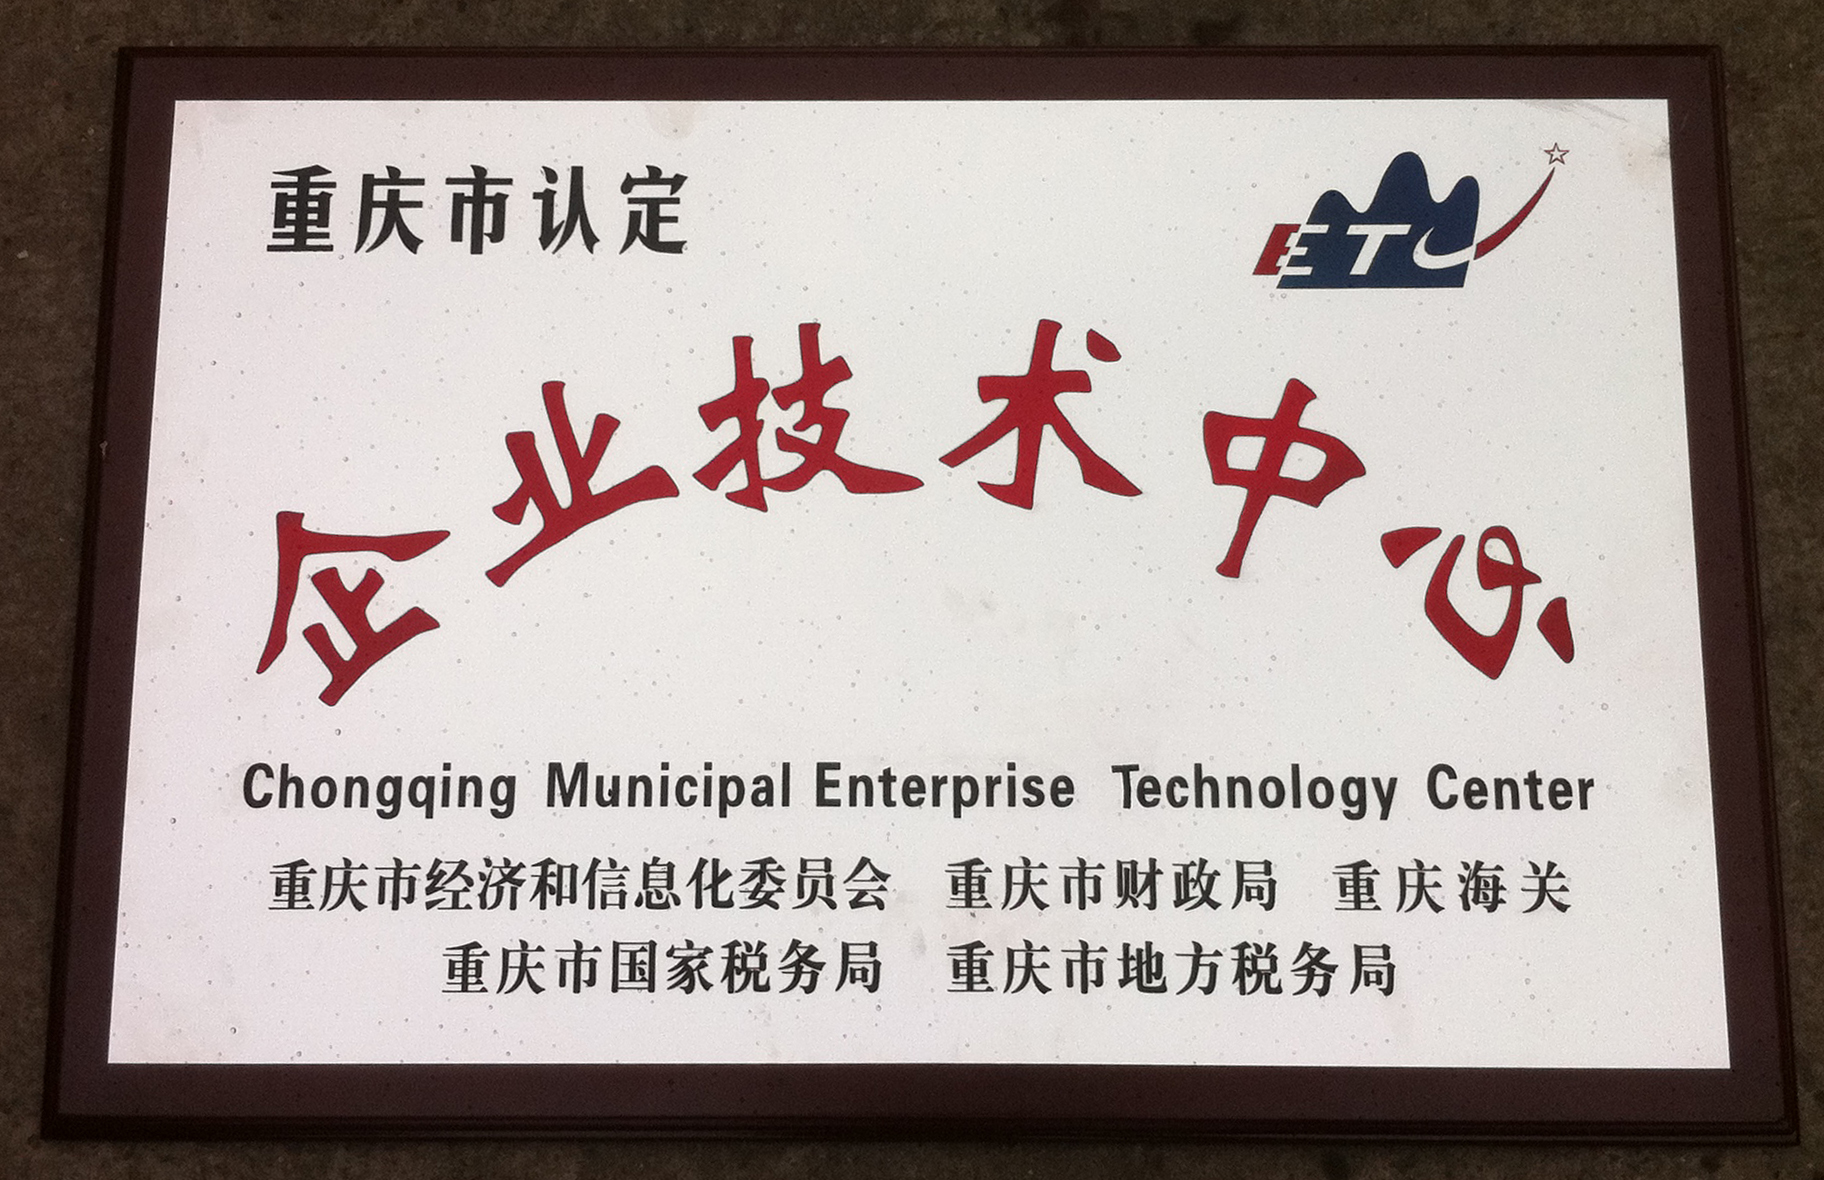 Chongqing Municipal Enterprise Technology Center